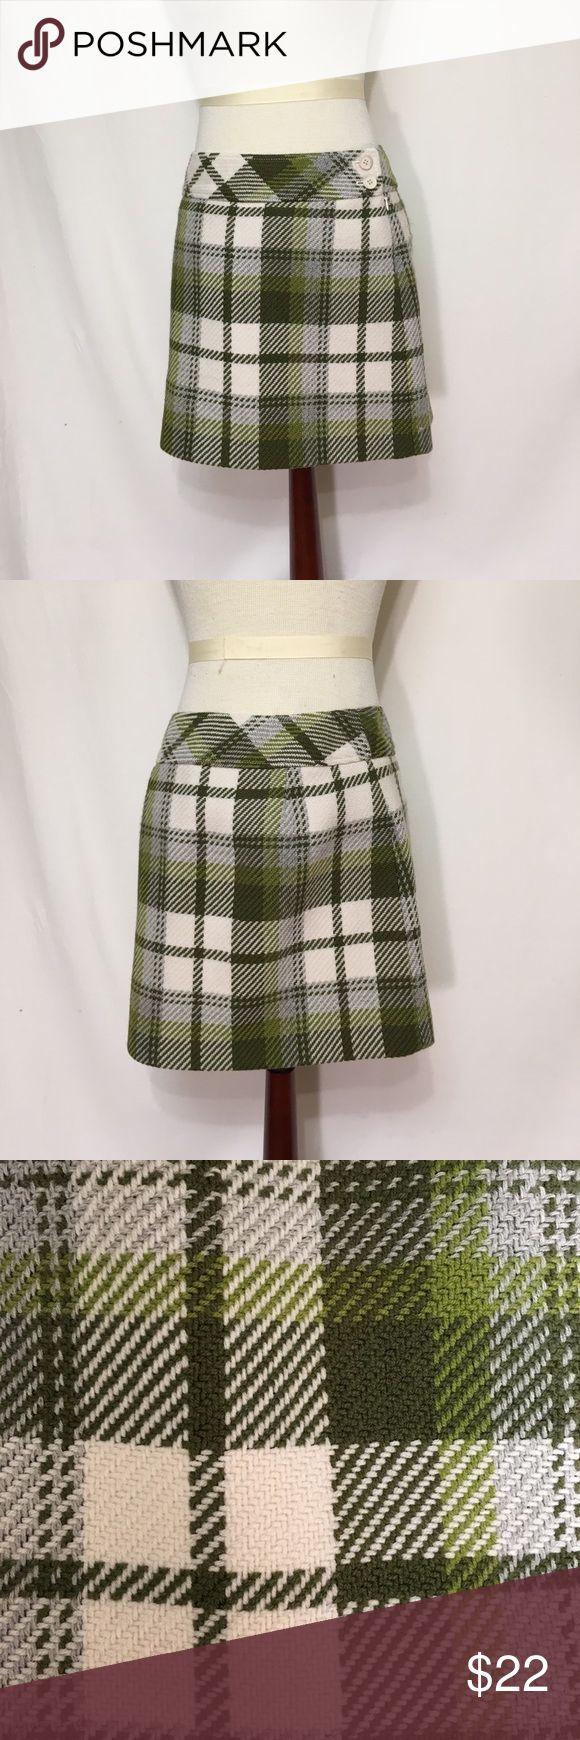 J CREW preppy plaid woven wool skirt 2 Minimal fuzzing was present when skirt is viewed at an angle. Otherwise,Excellent condition! Old school, pre Jenna j crew.  Wool, acetate lining. Dry clean.  Side zip, button closure 🔹waist 29 🔹length 16 J. Crew Skirts Mini